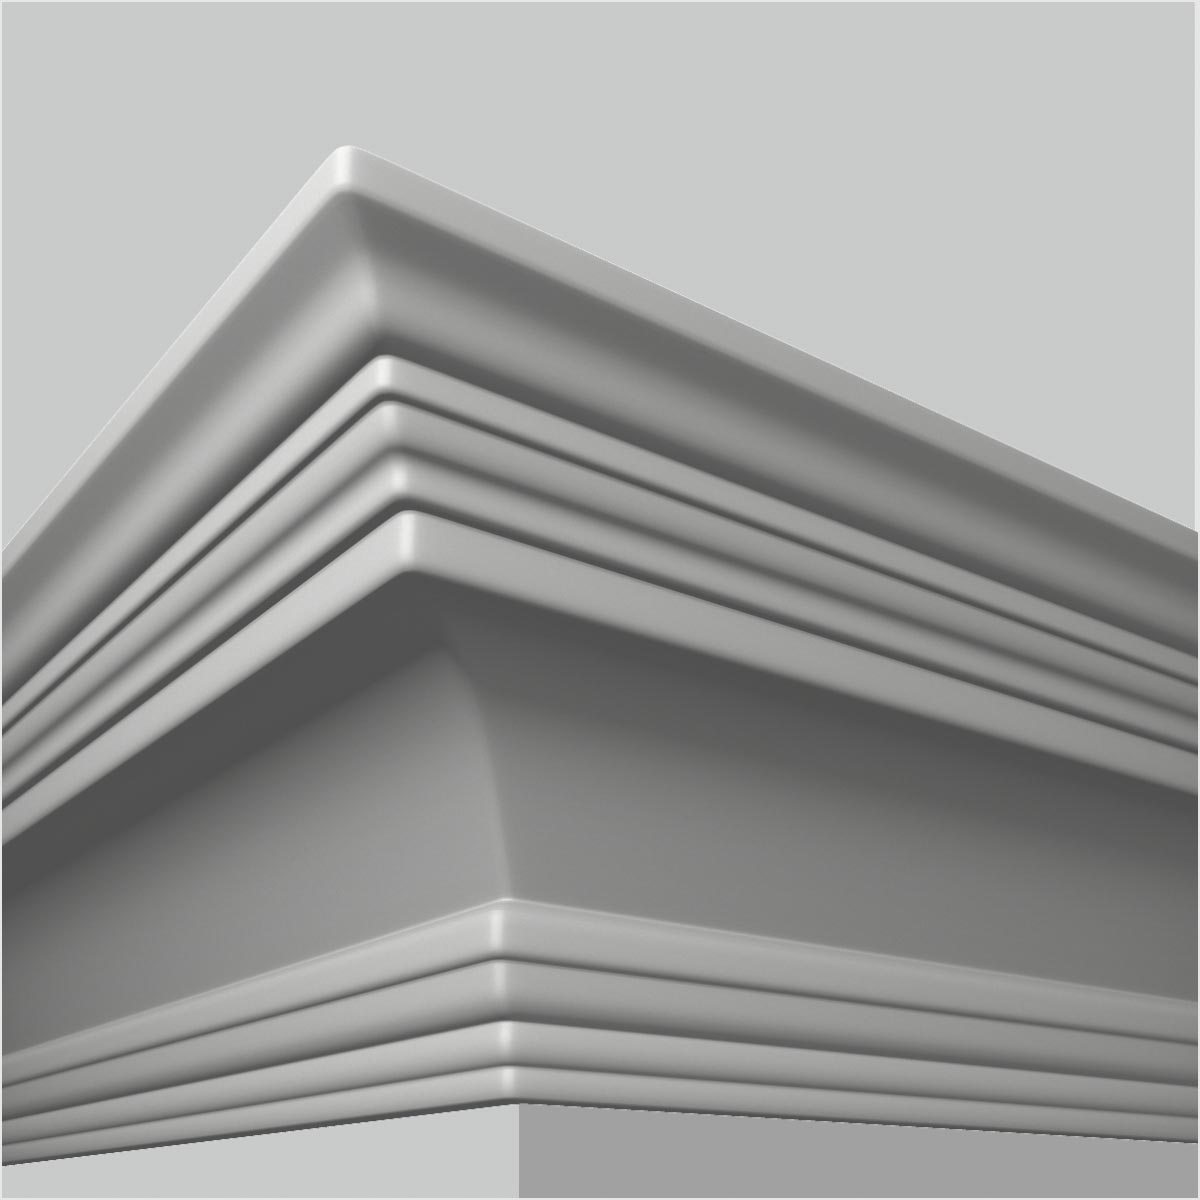 Architectural contemporary ceiling molding